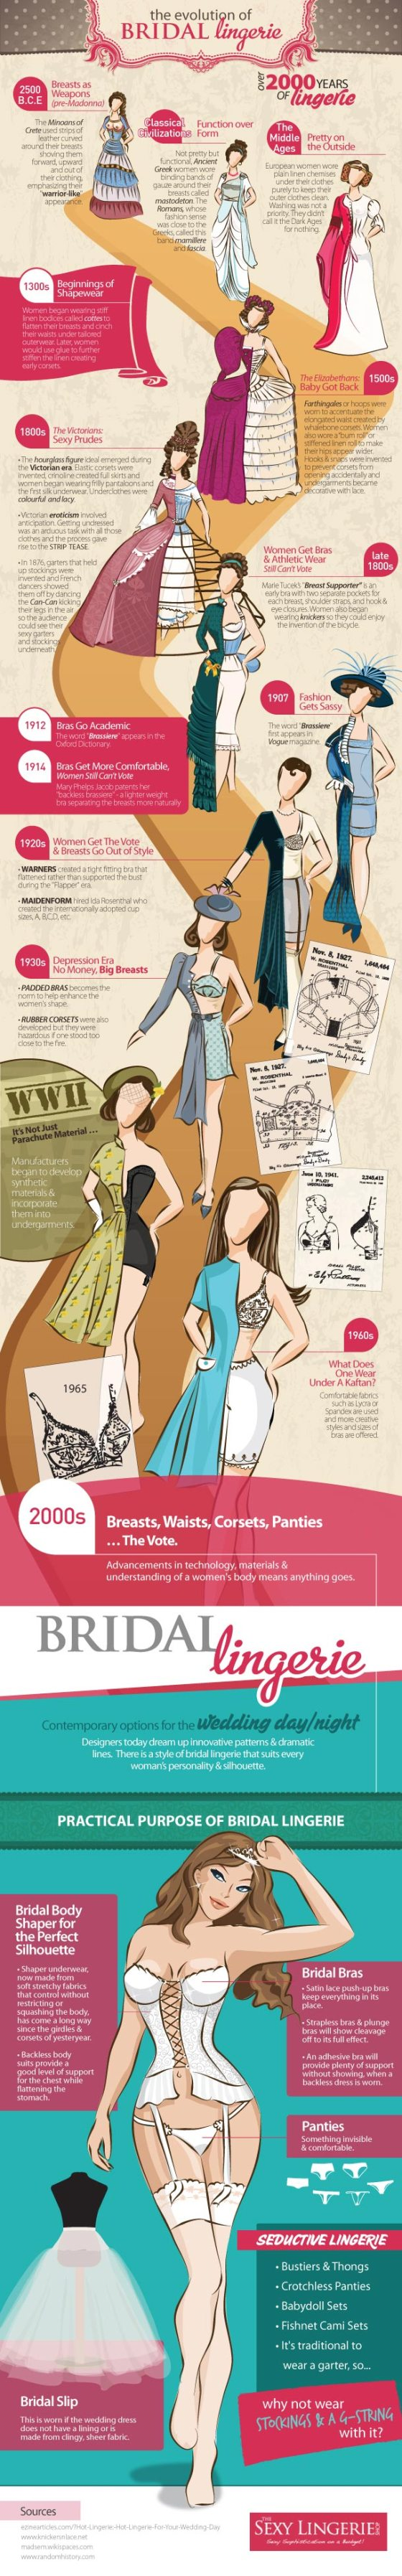 Infographic: The Evolution of Bridal Lingerie